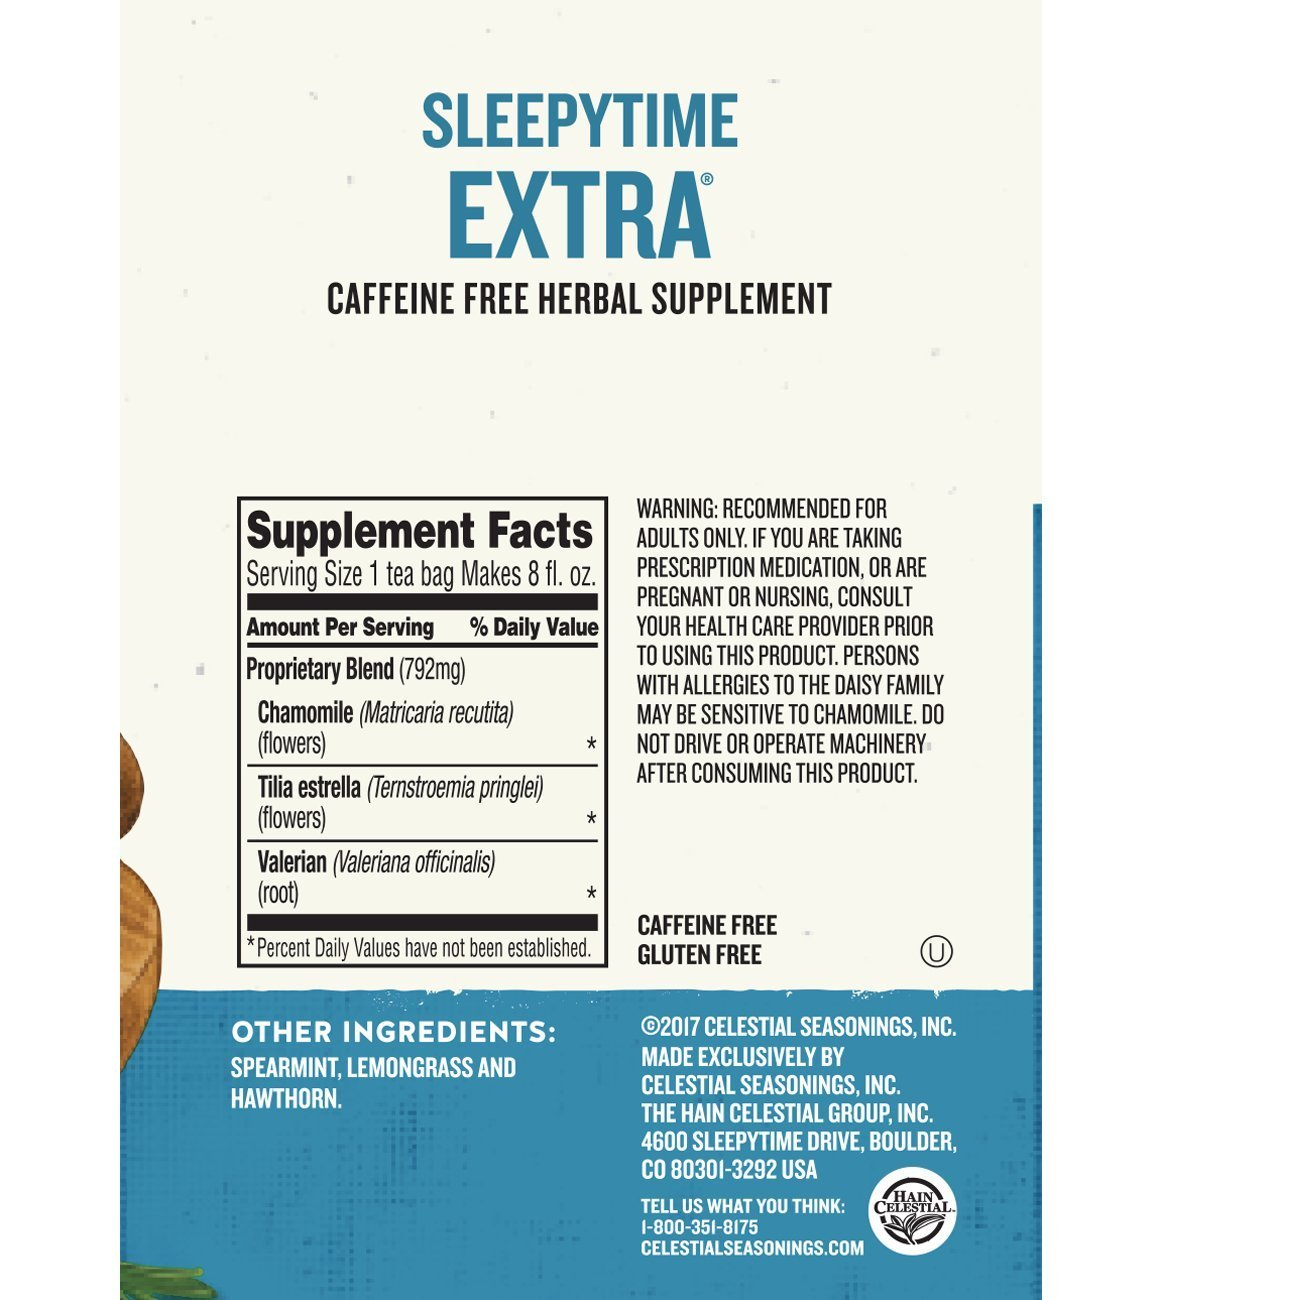 Celestial Seasonings Wellness Tea, Sleepytime Extra, 40 Count (Pack of 6) by Celestial Seasonings (Image #7)